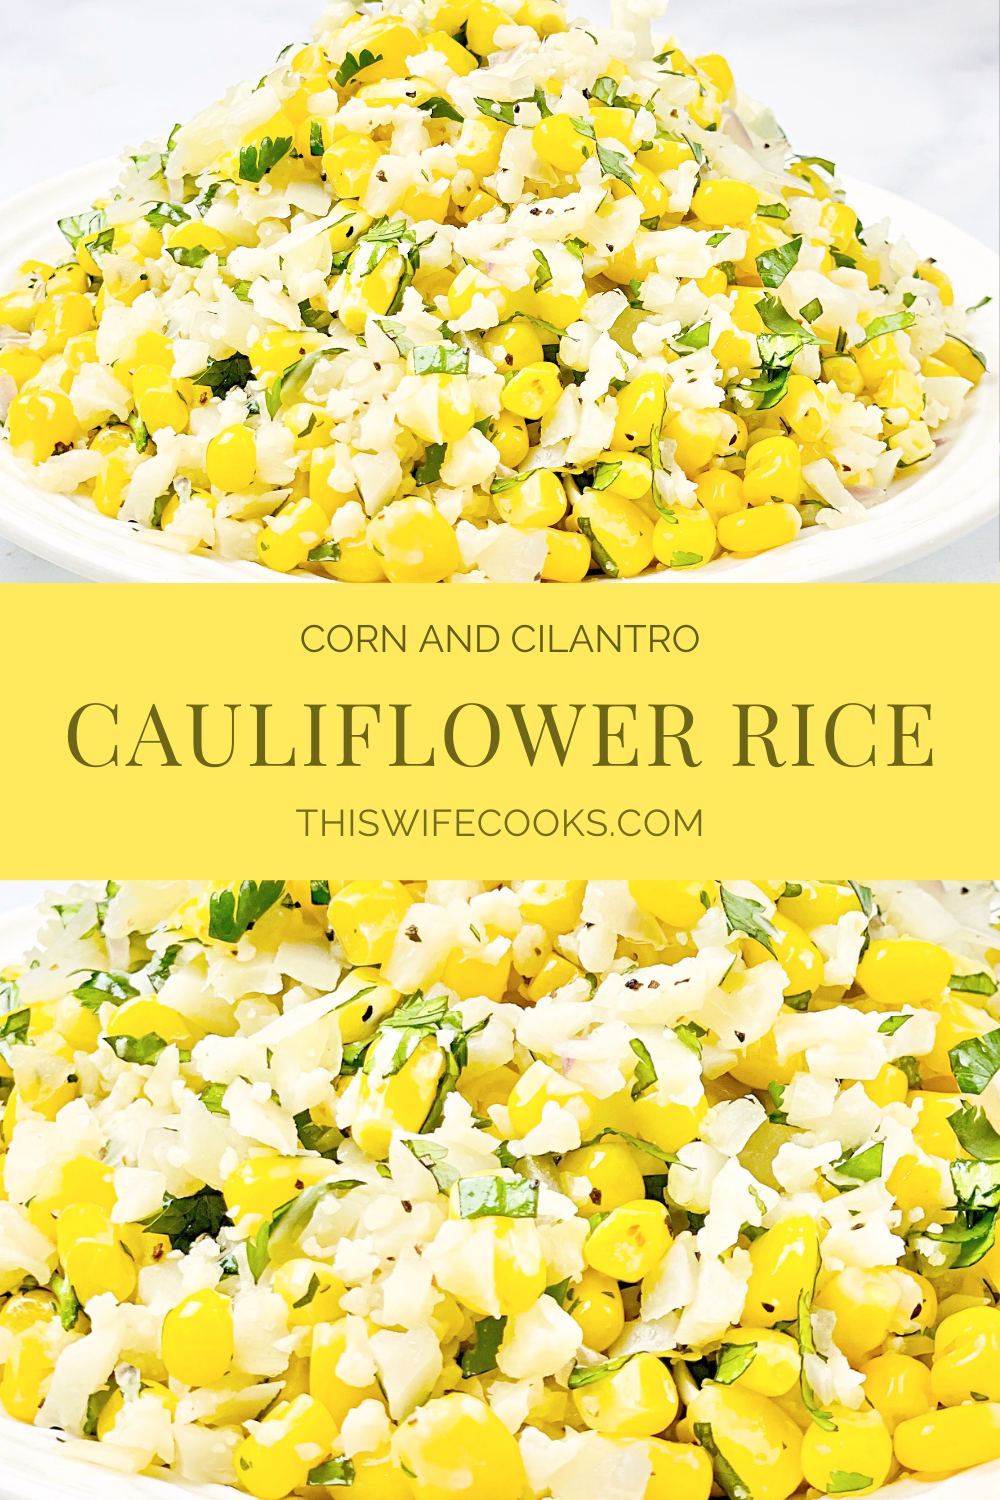 Corn and Cilantro Cauliflower Rice ~ An easy low-carb dish that is light, flavorful, and ready to serve in 15 minutes or less! via @thiswifecooks